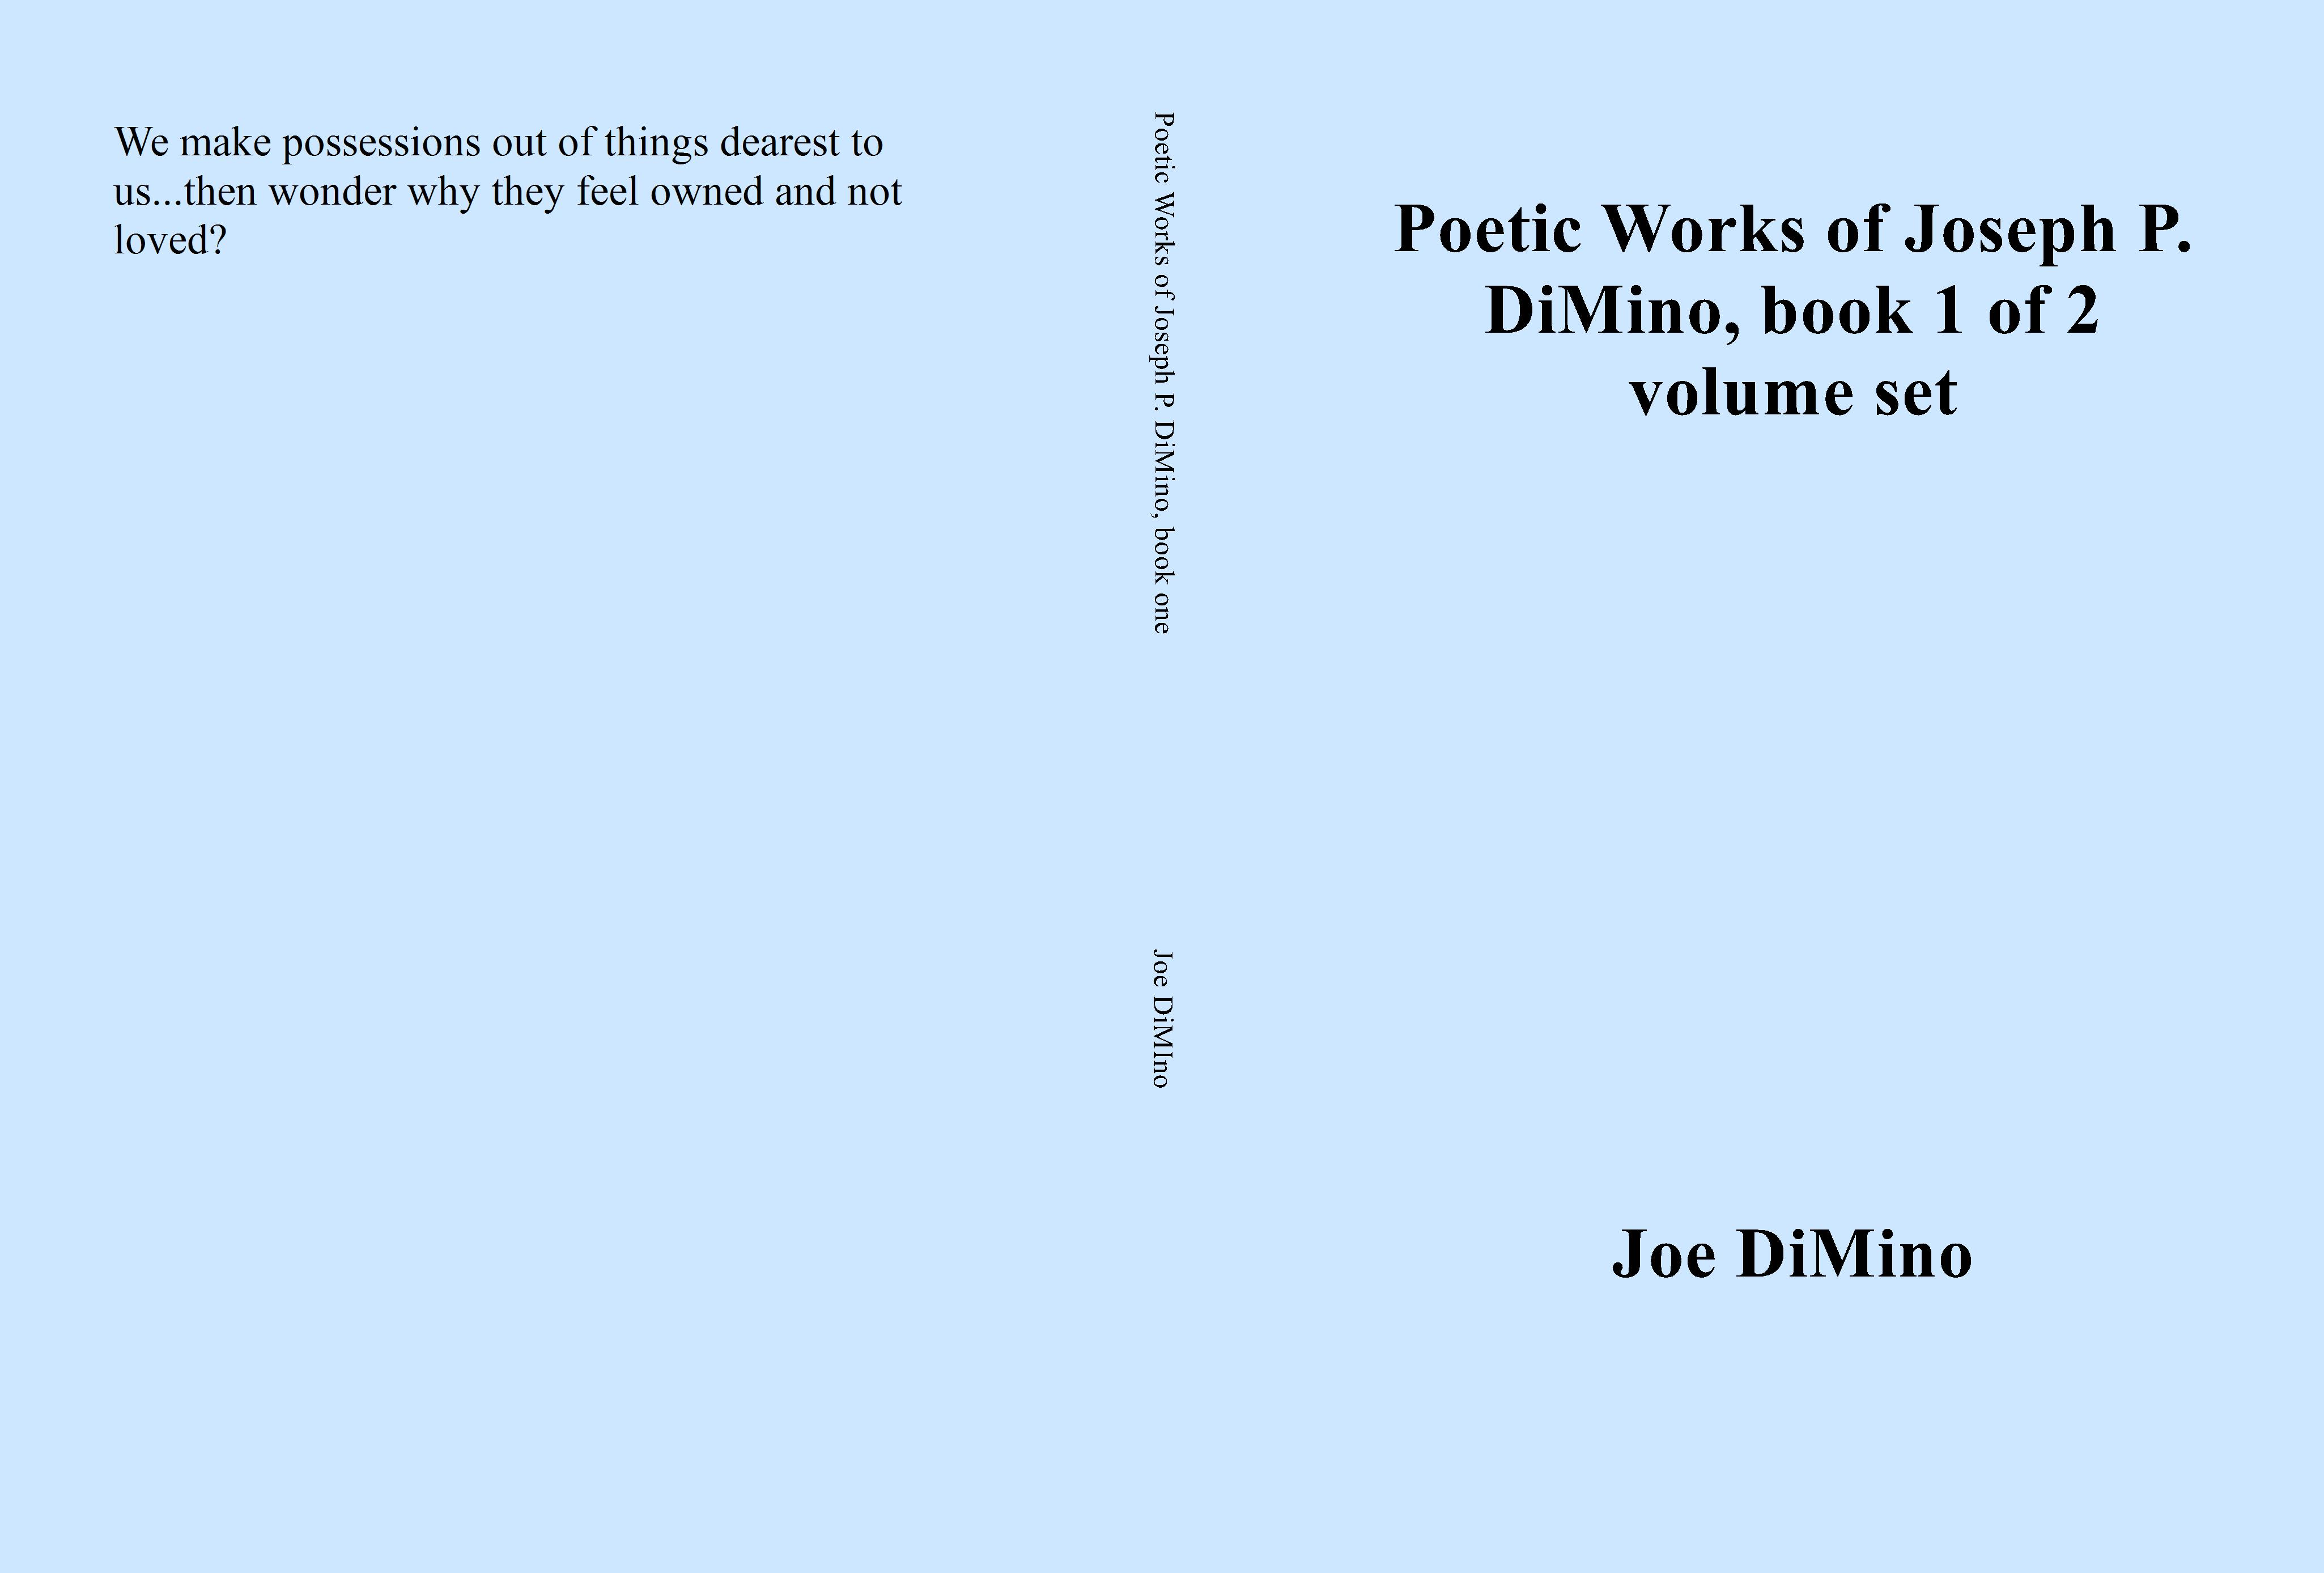 Poetic Works of Joseph P. DiMino, book one cover image